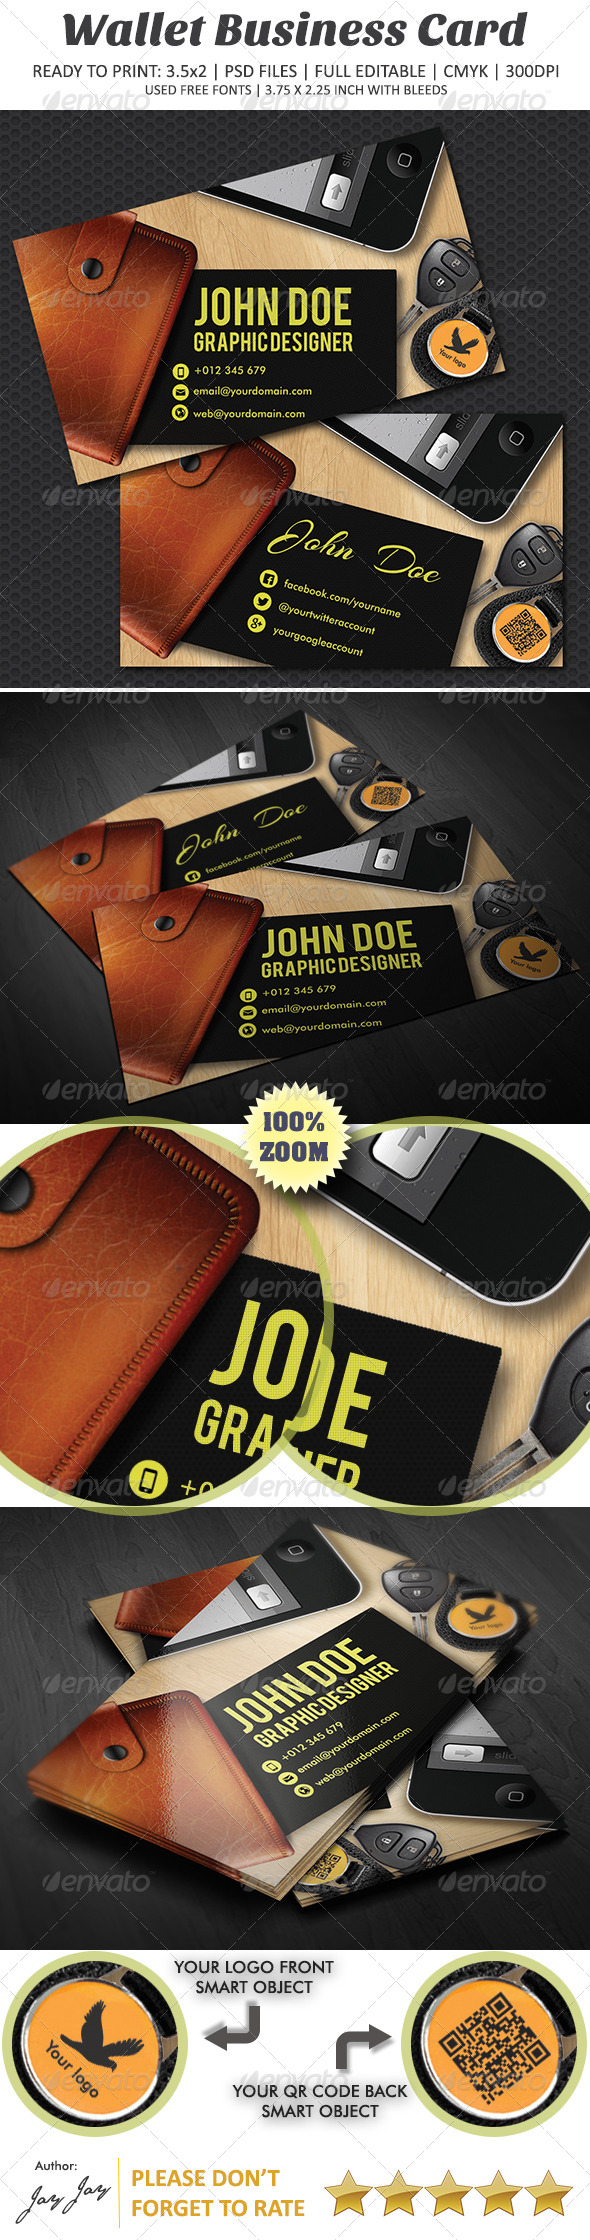 GraphicRiver Wallet Business Card 4077241